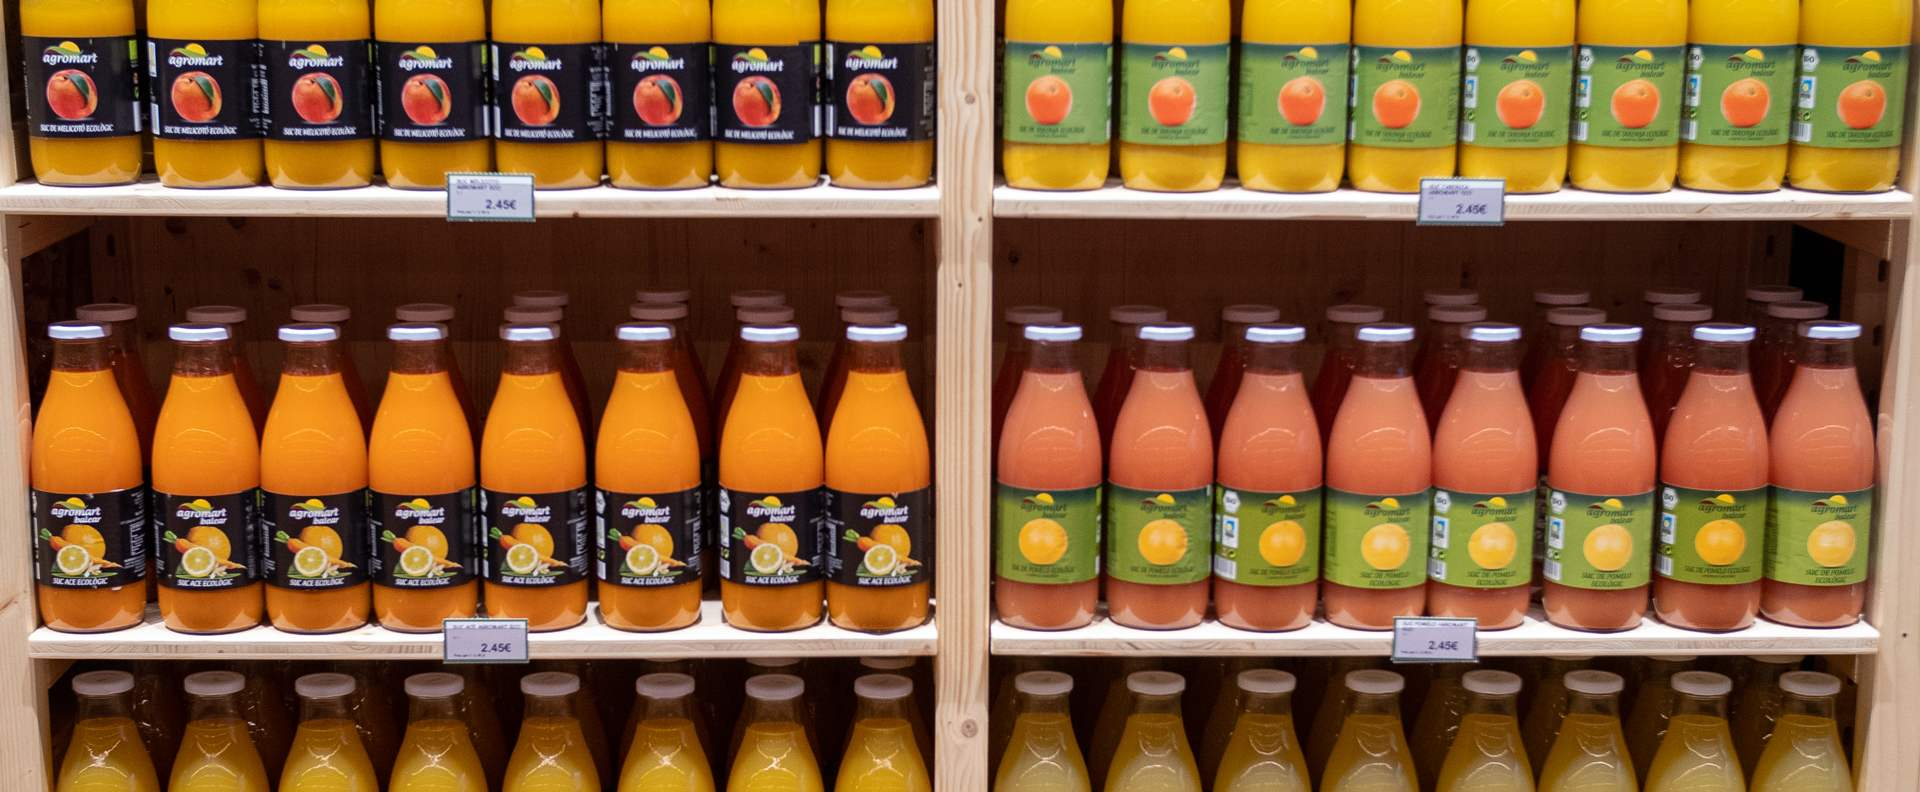 Juices and Drinks